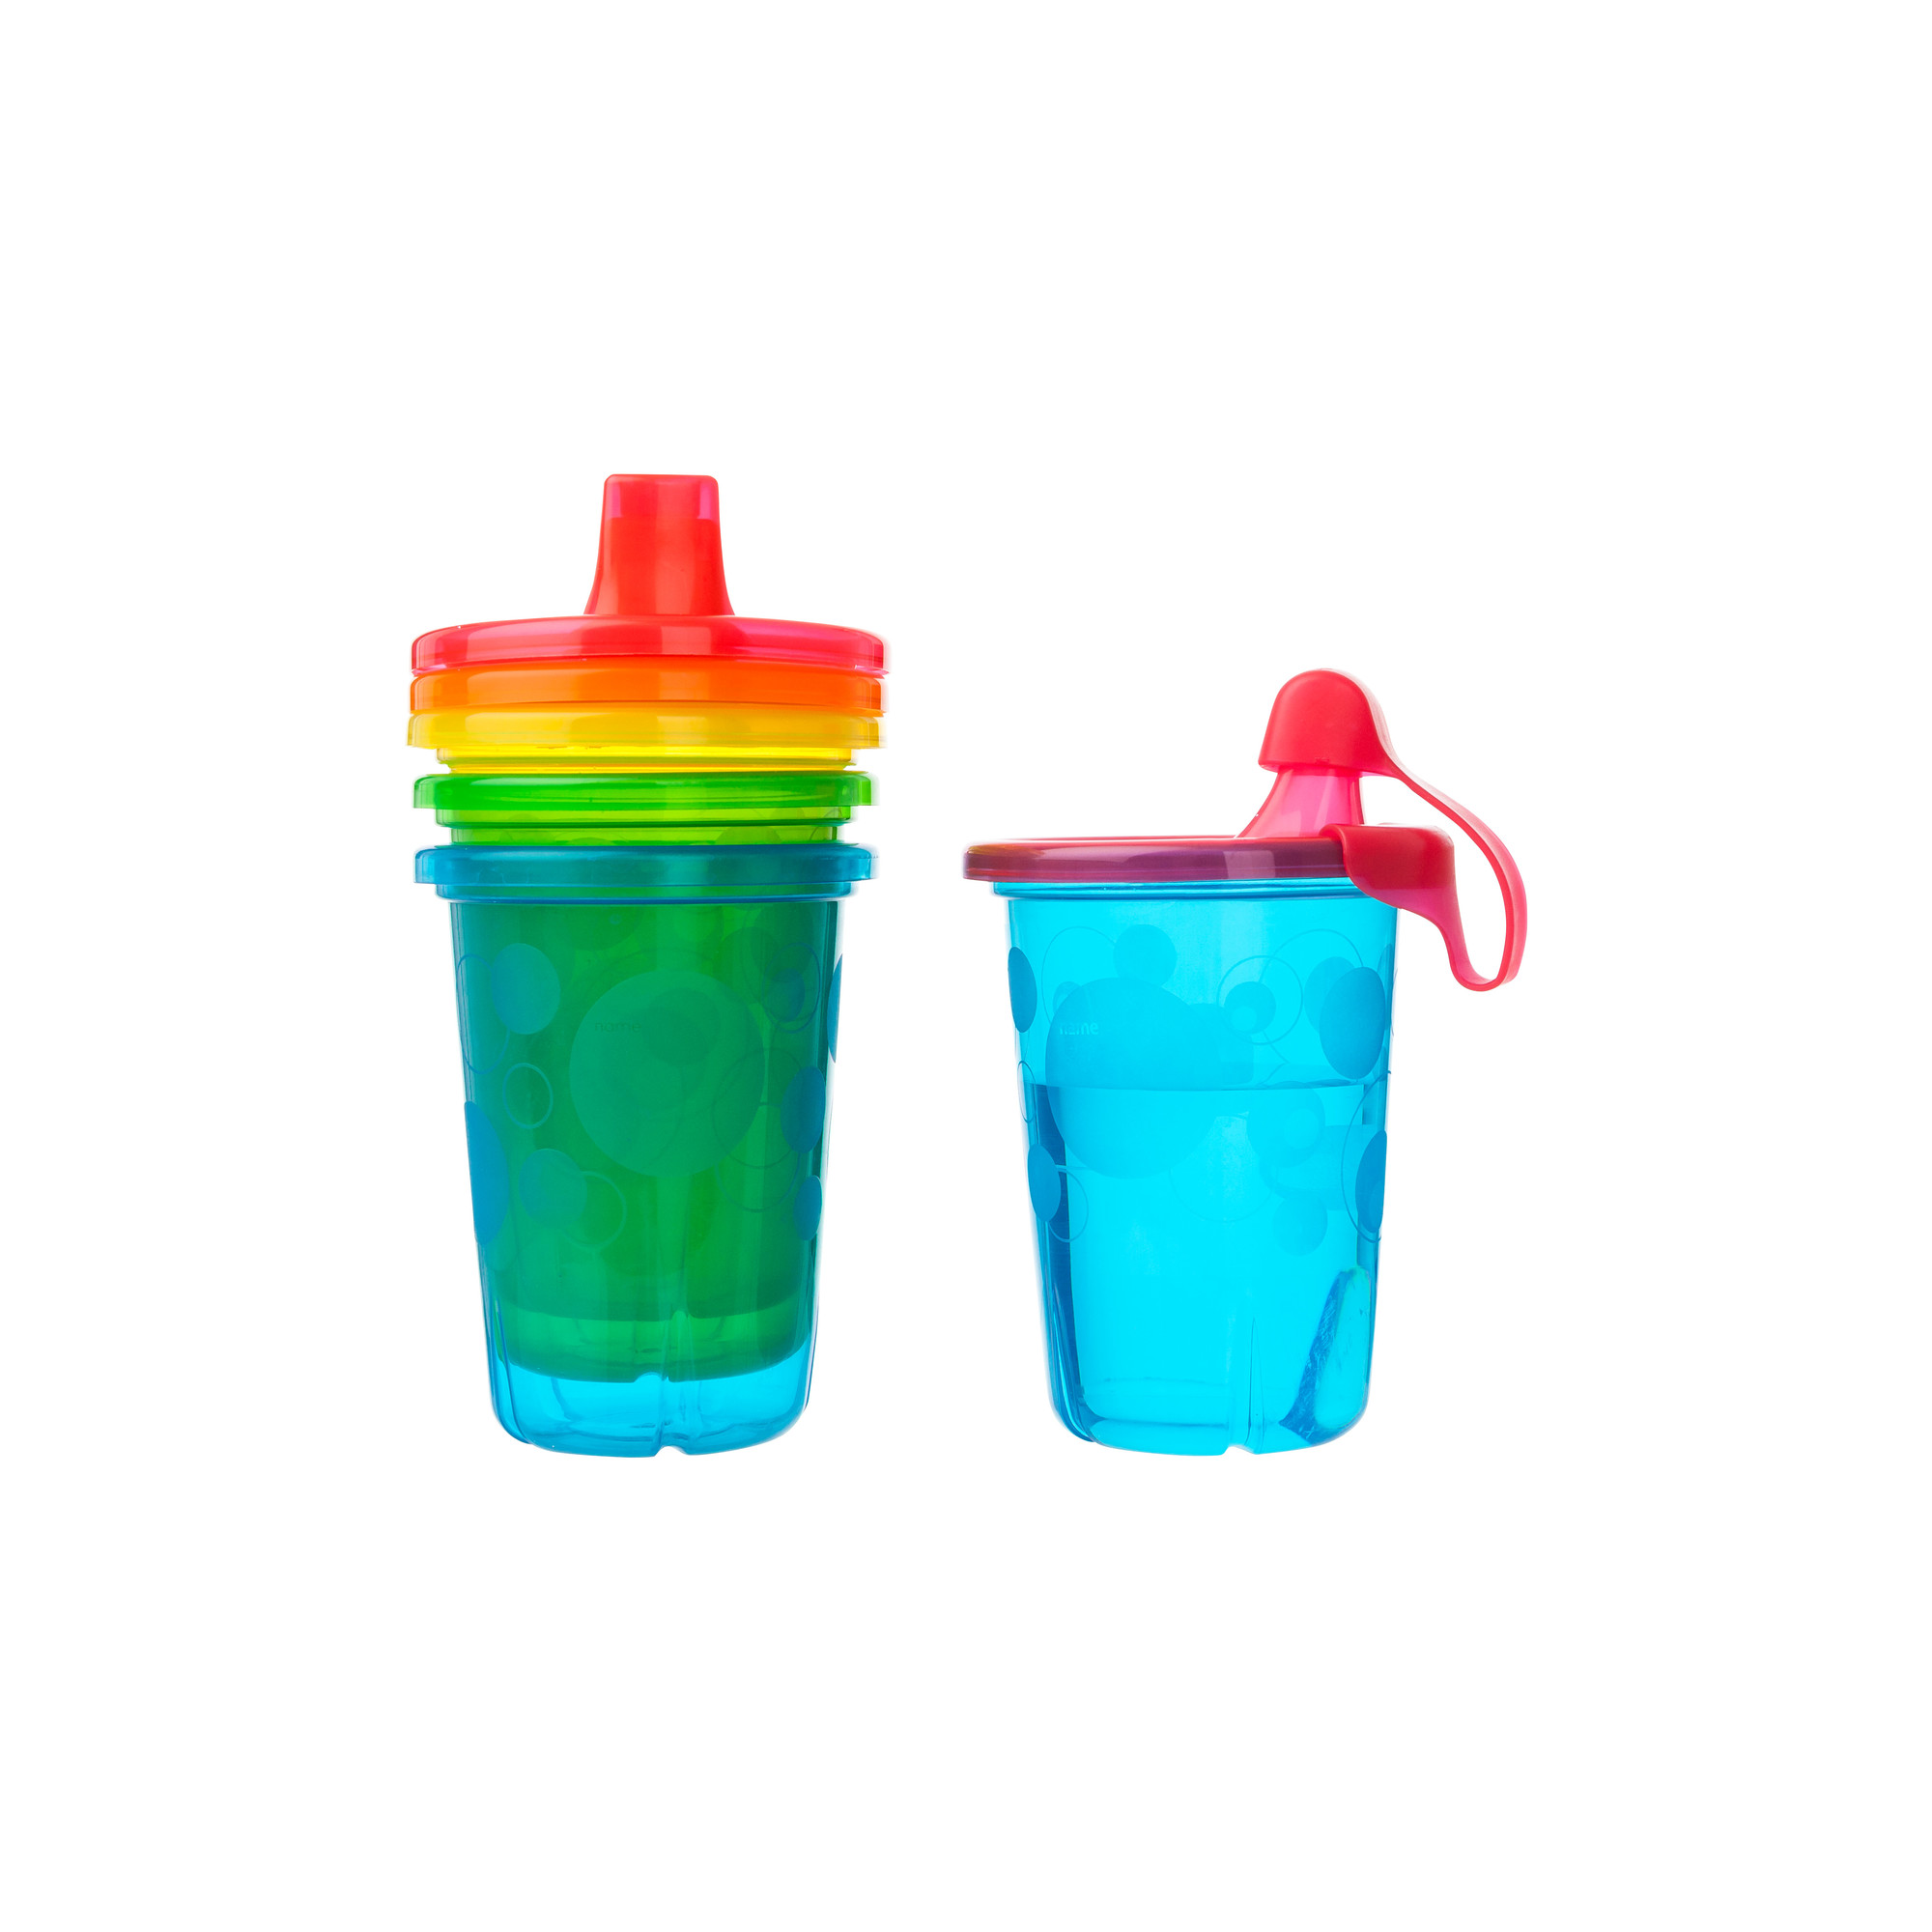 Take & Toss Sippy Cups 10 Oz – 4 Pack